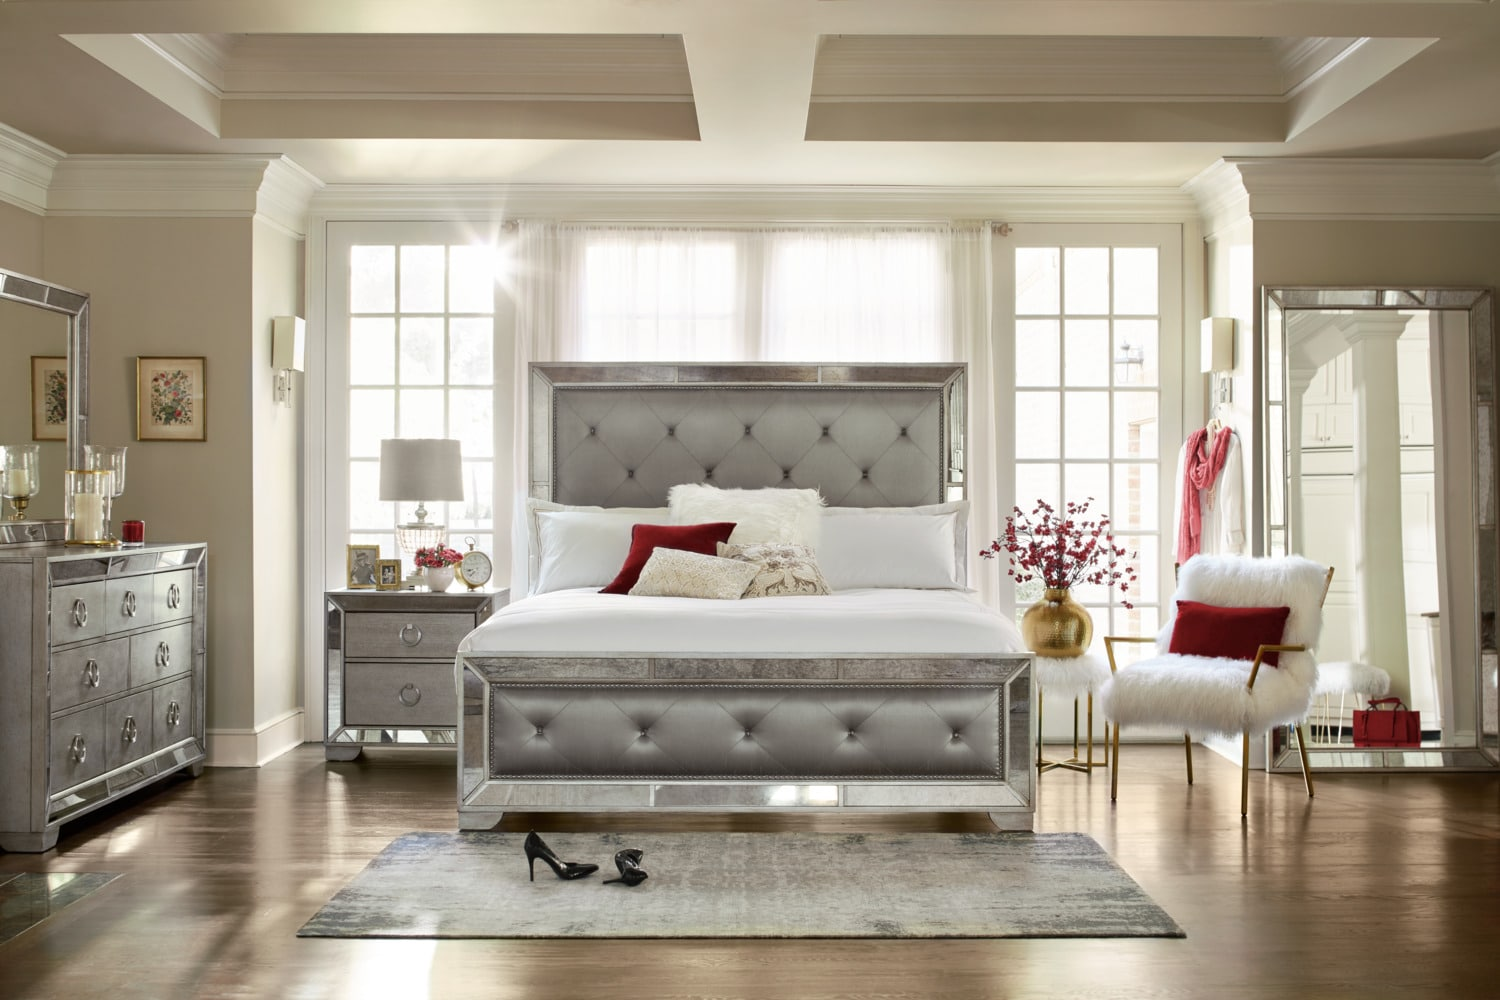 click to change image - Mirror Bed Frame